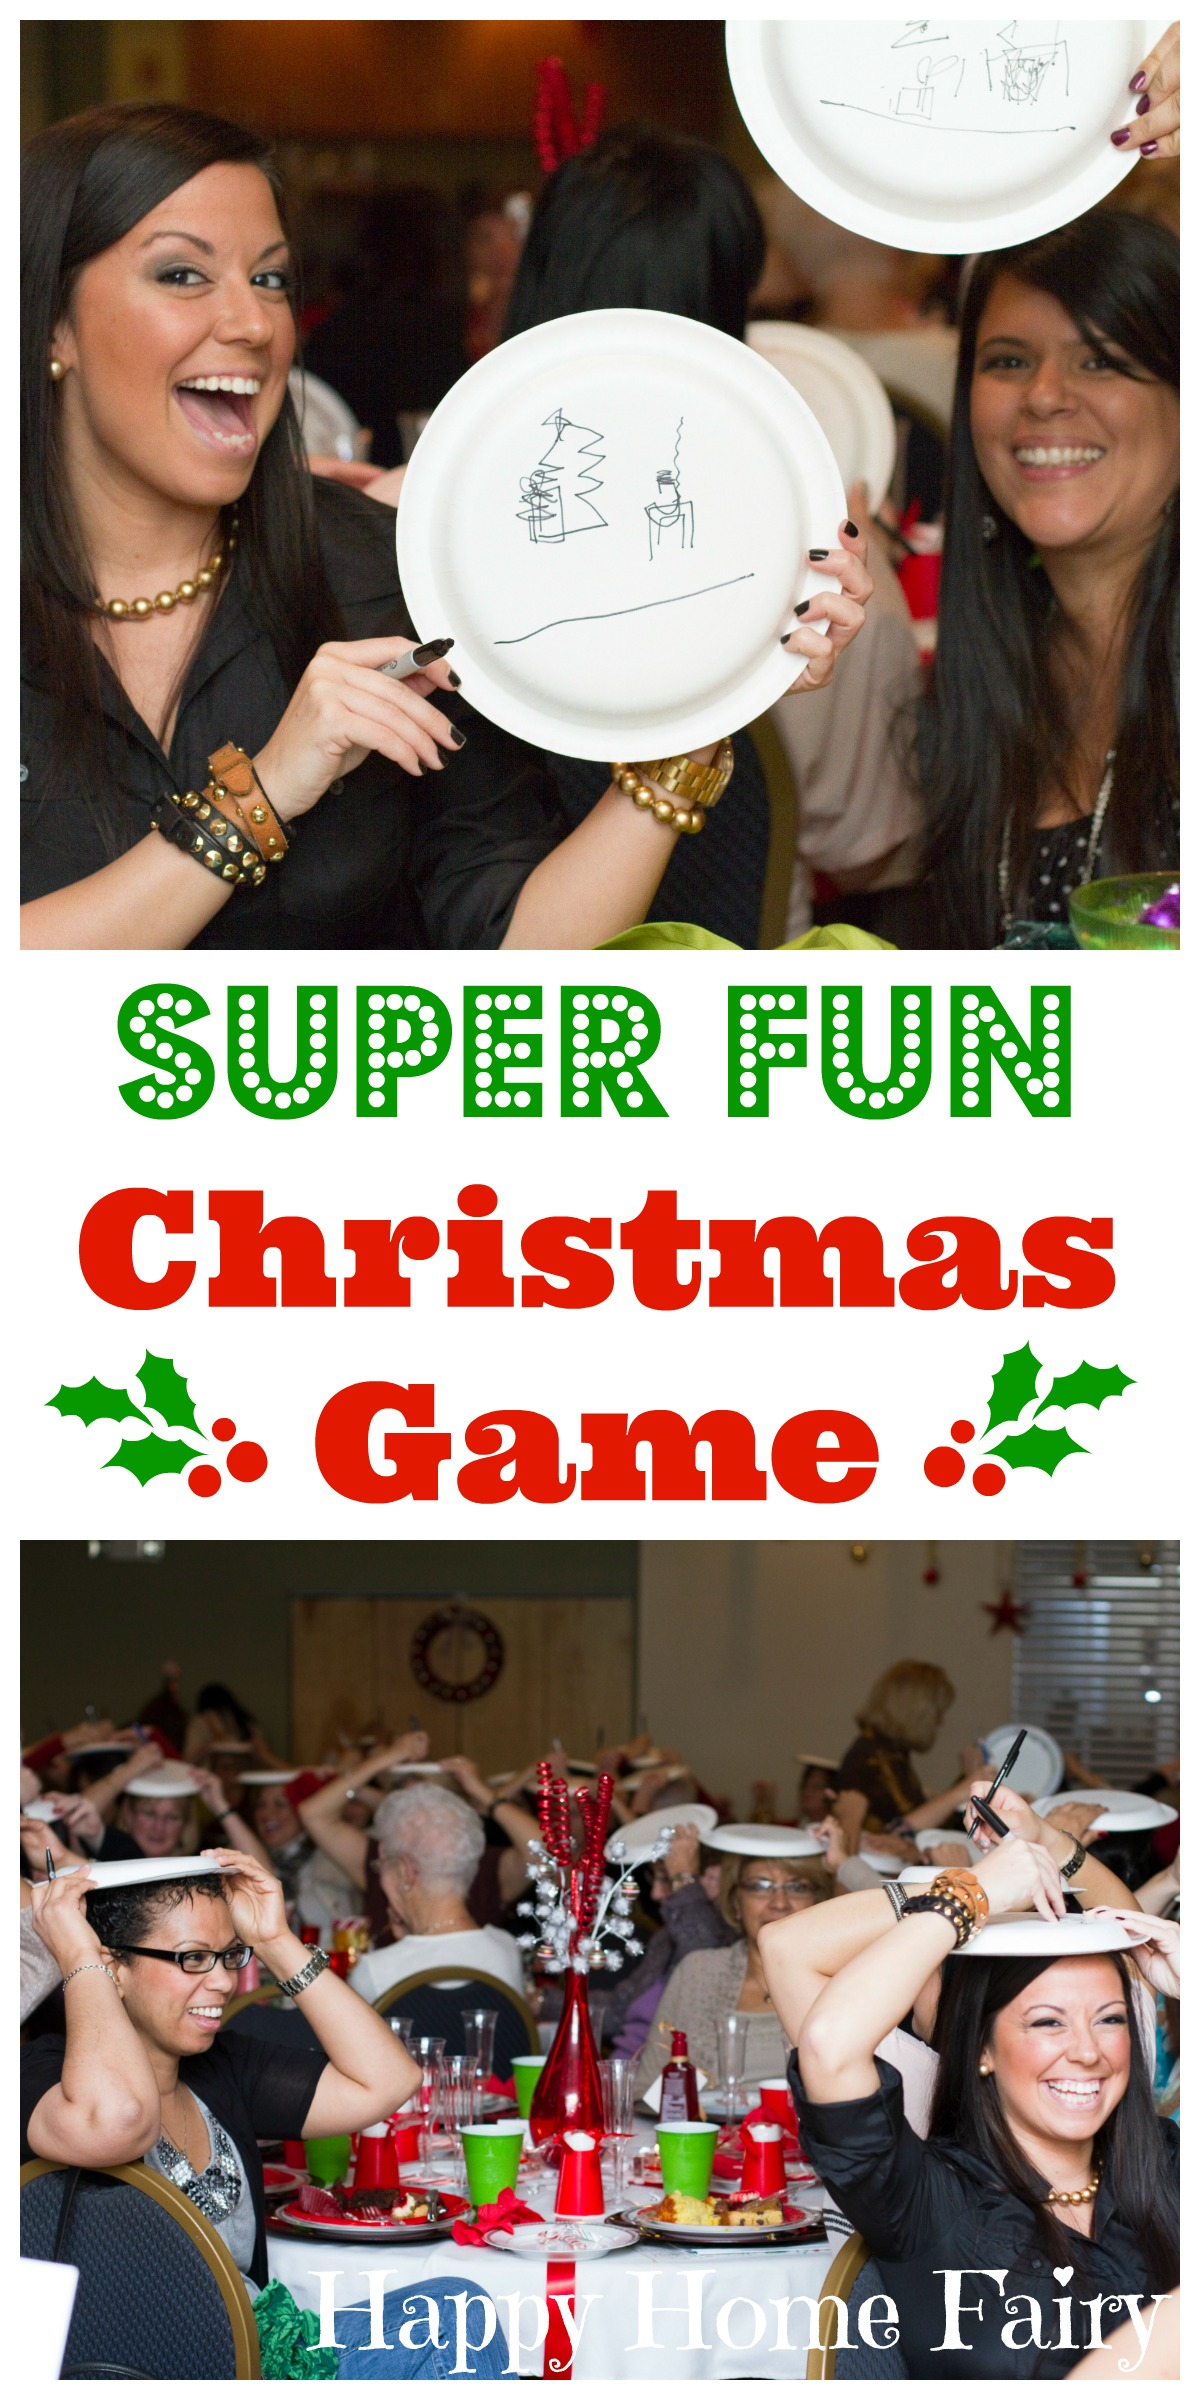 Consider, Fun games to play at a party for adults